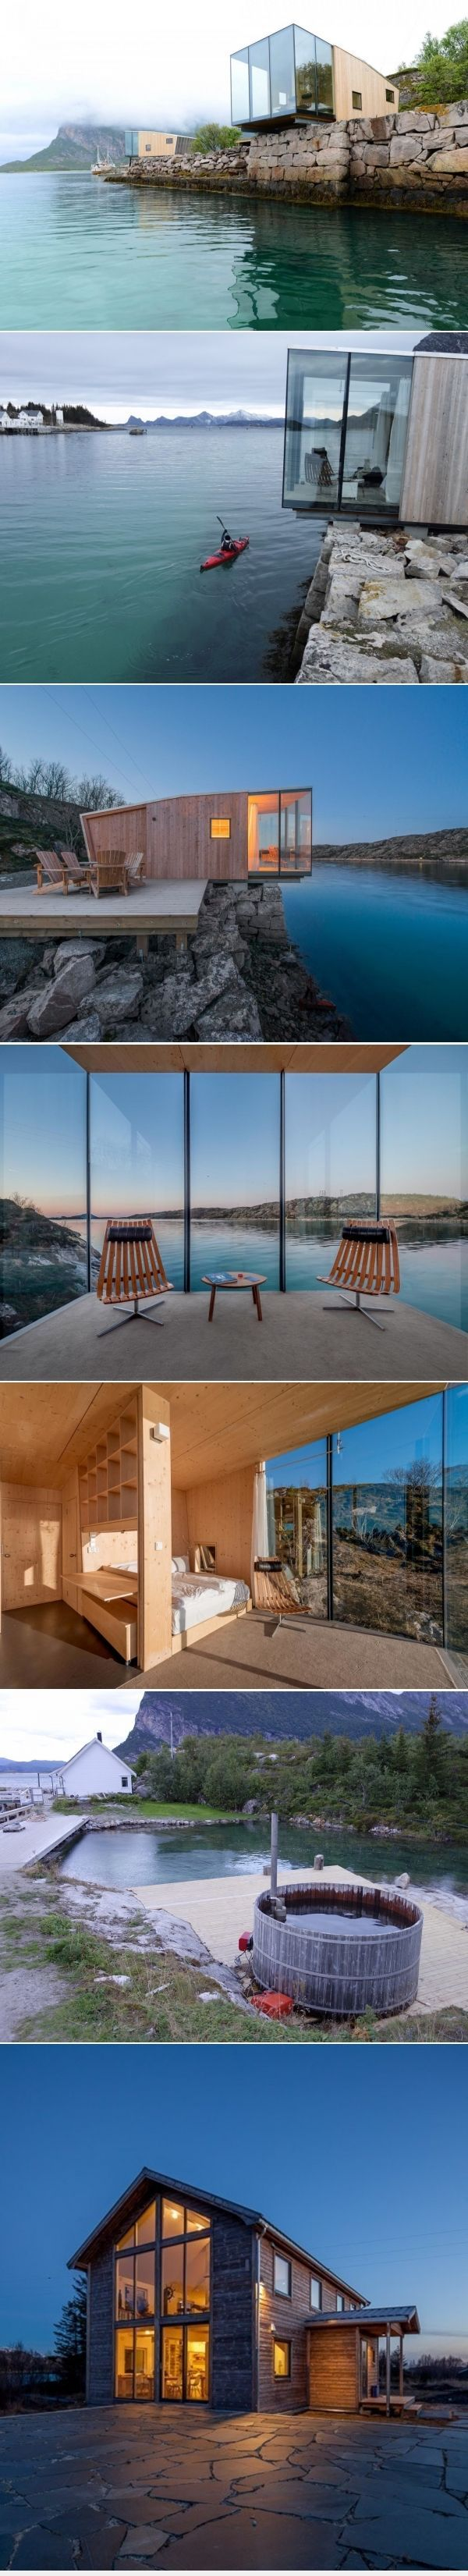 218 best luxury cabins images on pinterest nature white people